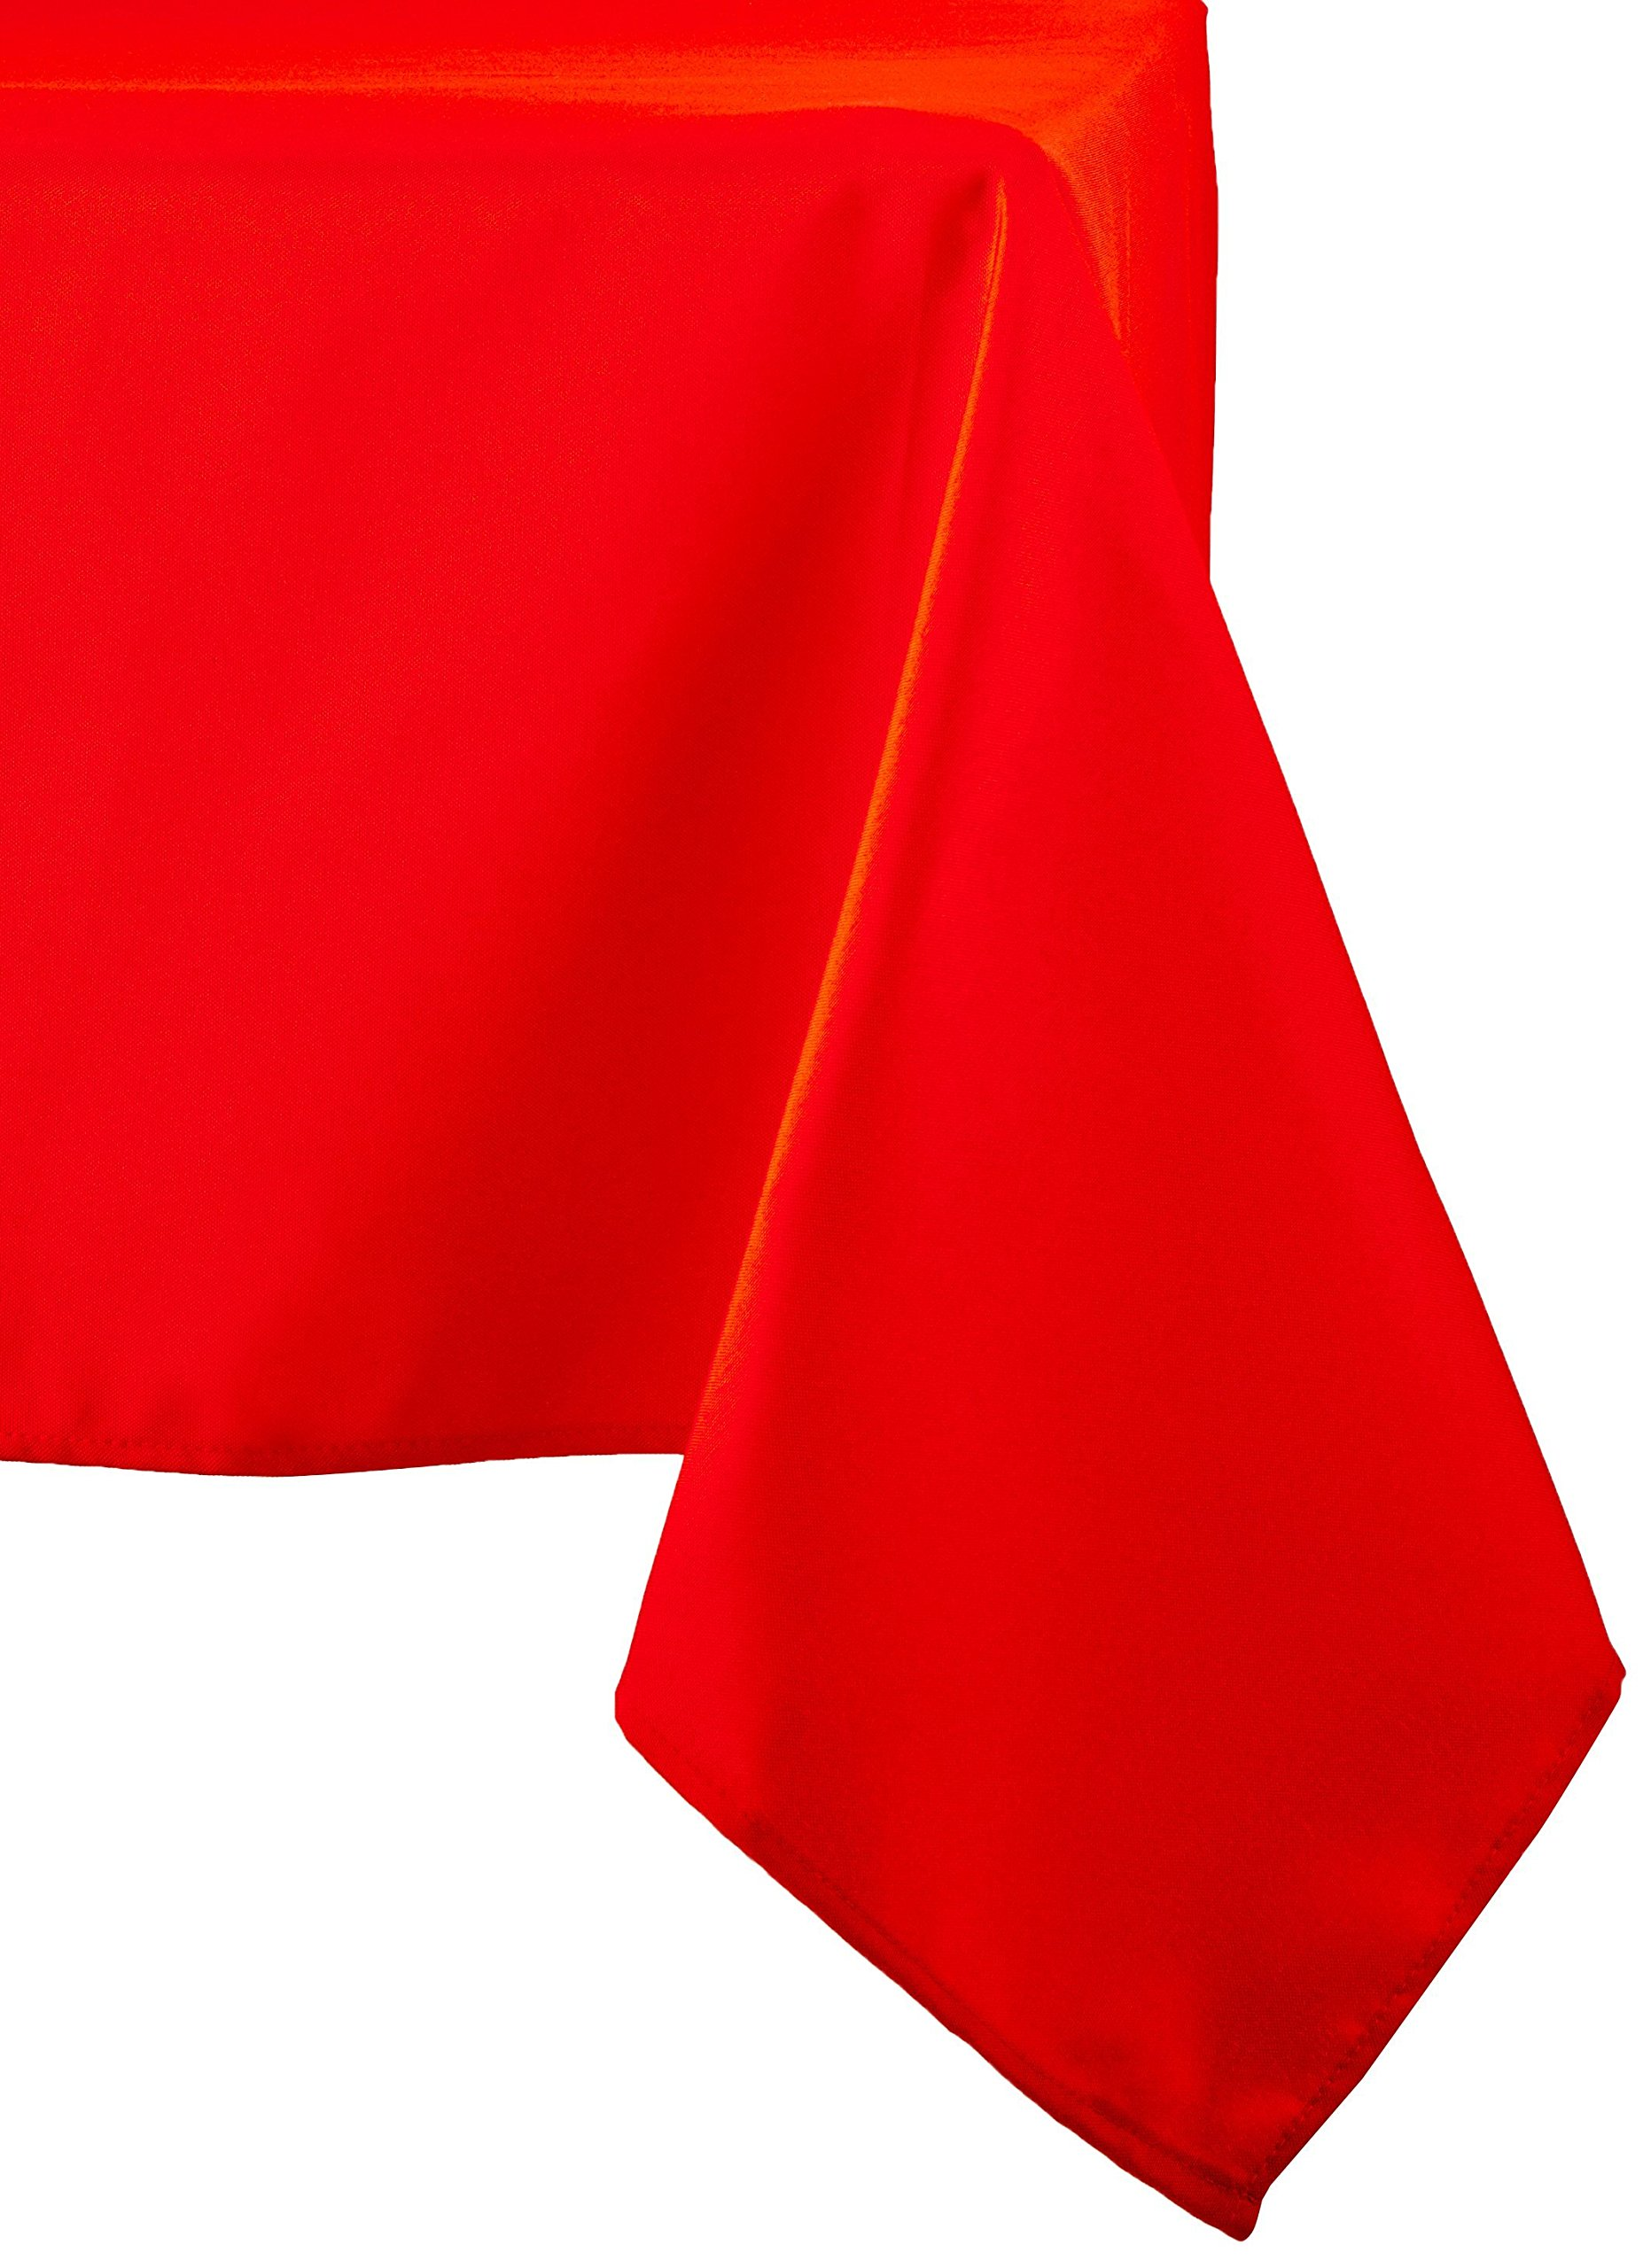 Linentablecloth 60 X 126-Inch Rectangular Polyester Tablecloth Red 2